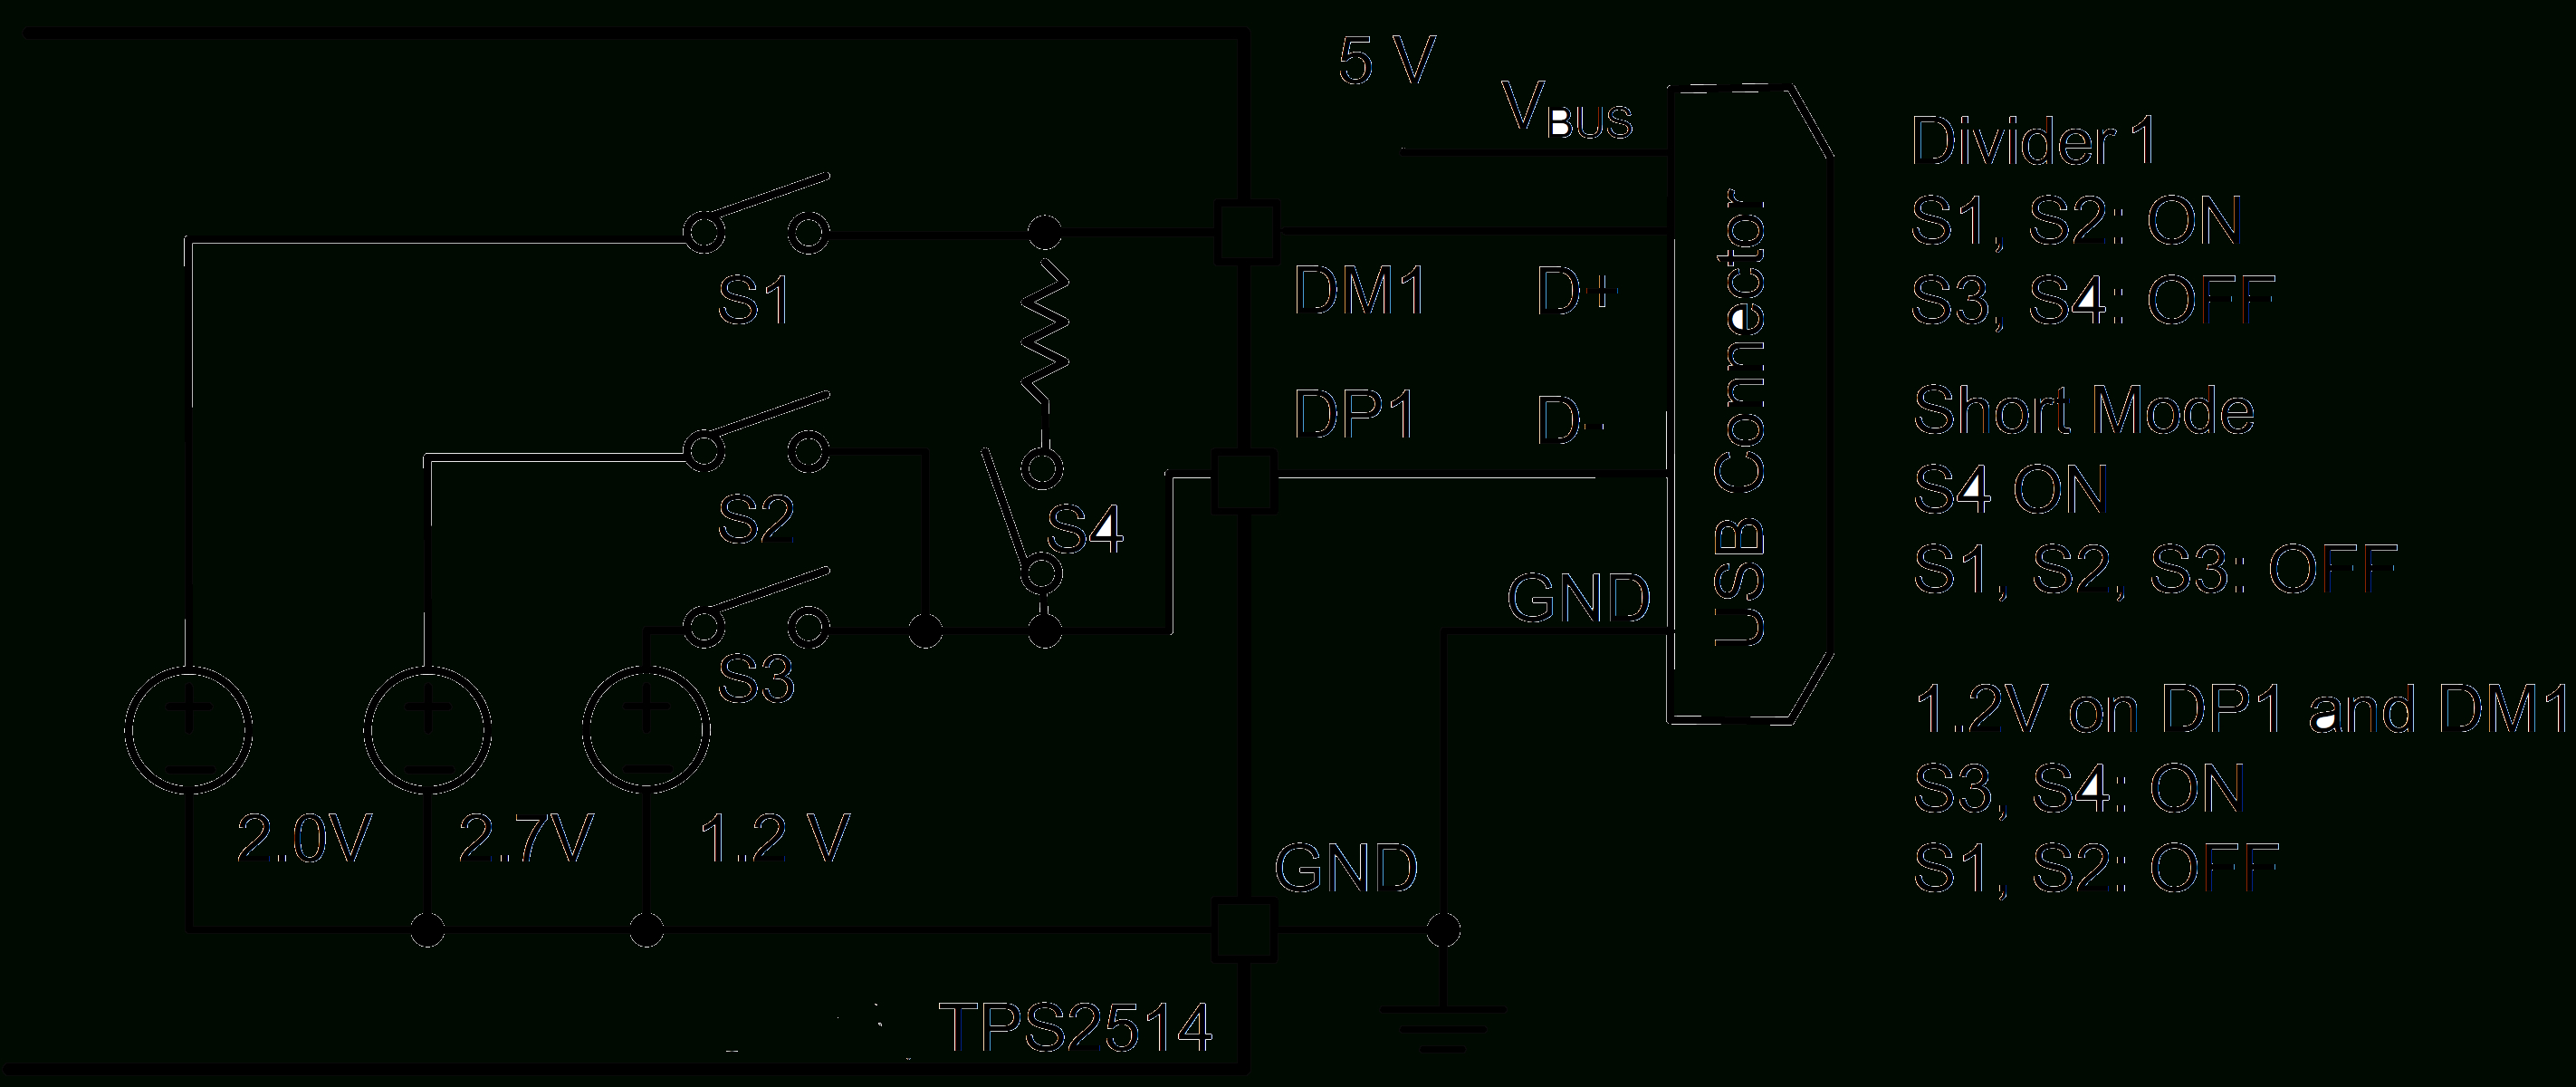 Usb Charging Without Fear - Micro Usb To Samsung S4 Adapter Wiring Diagram